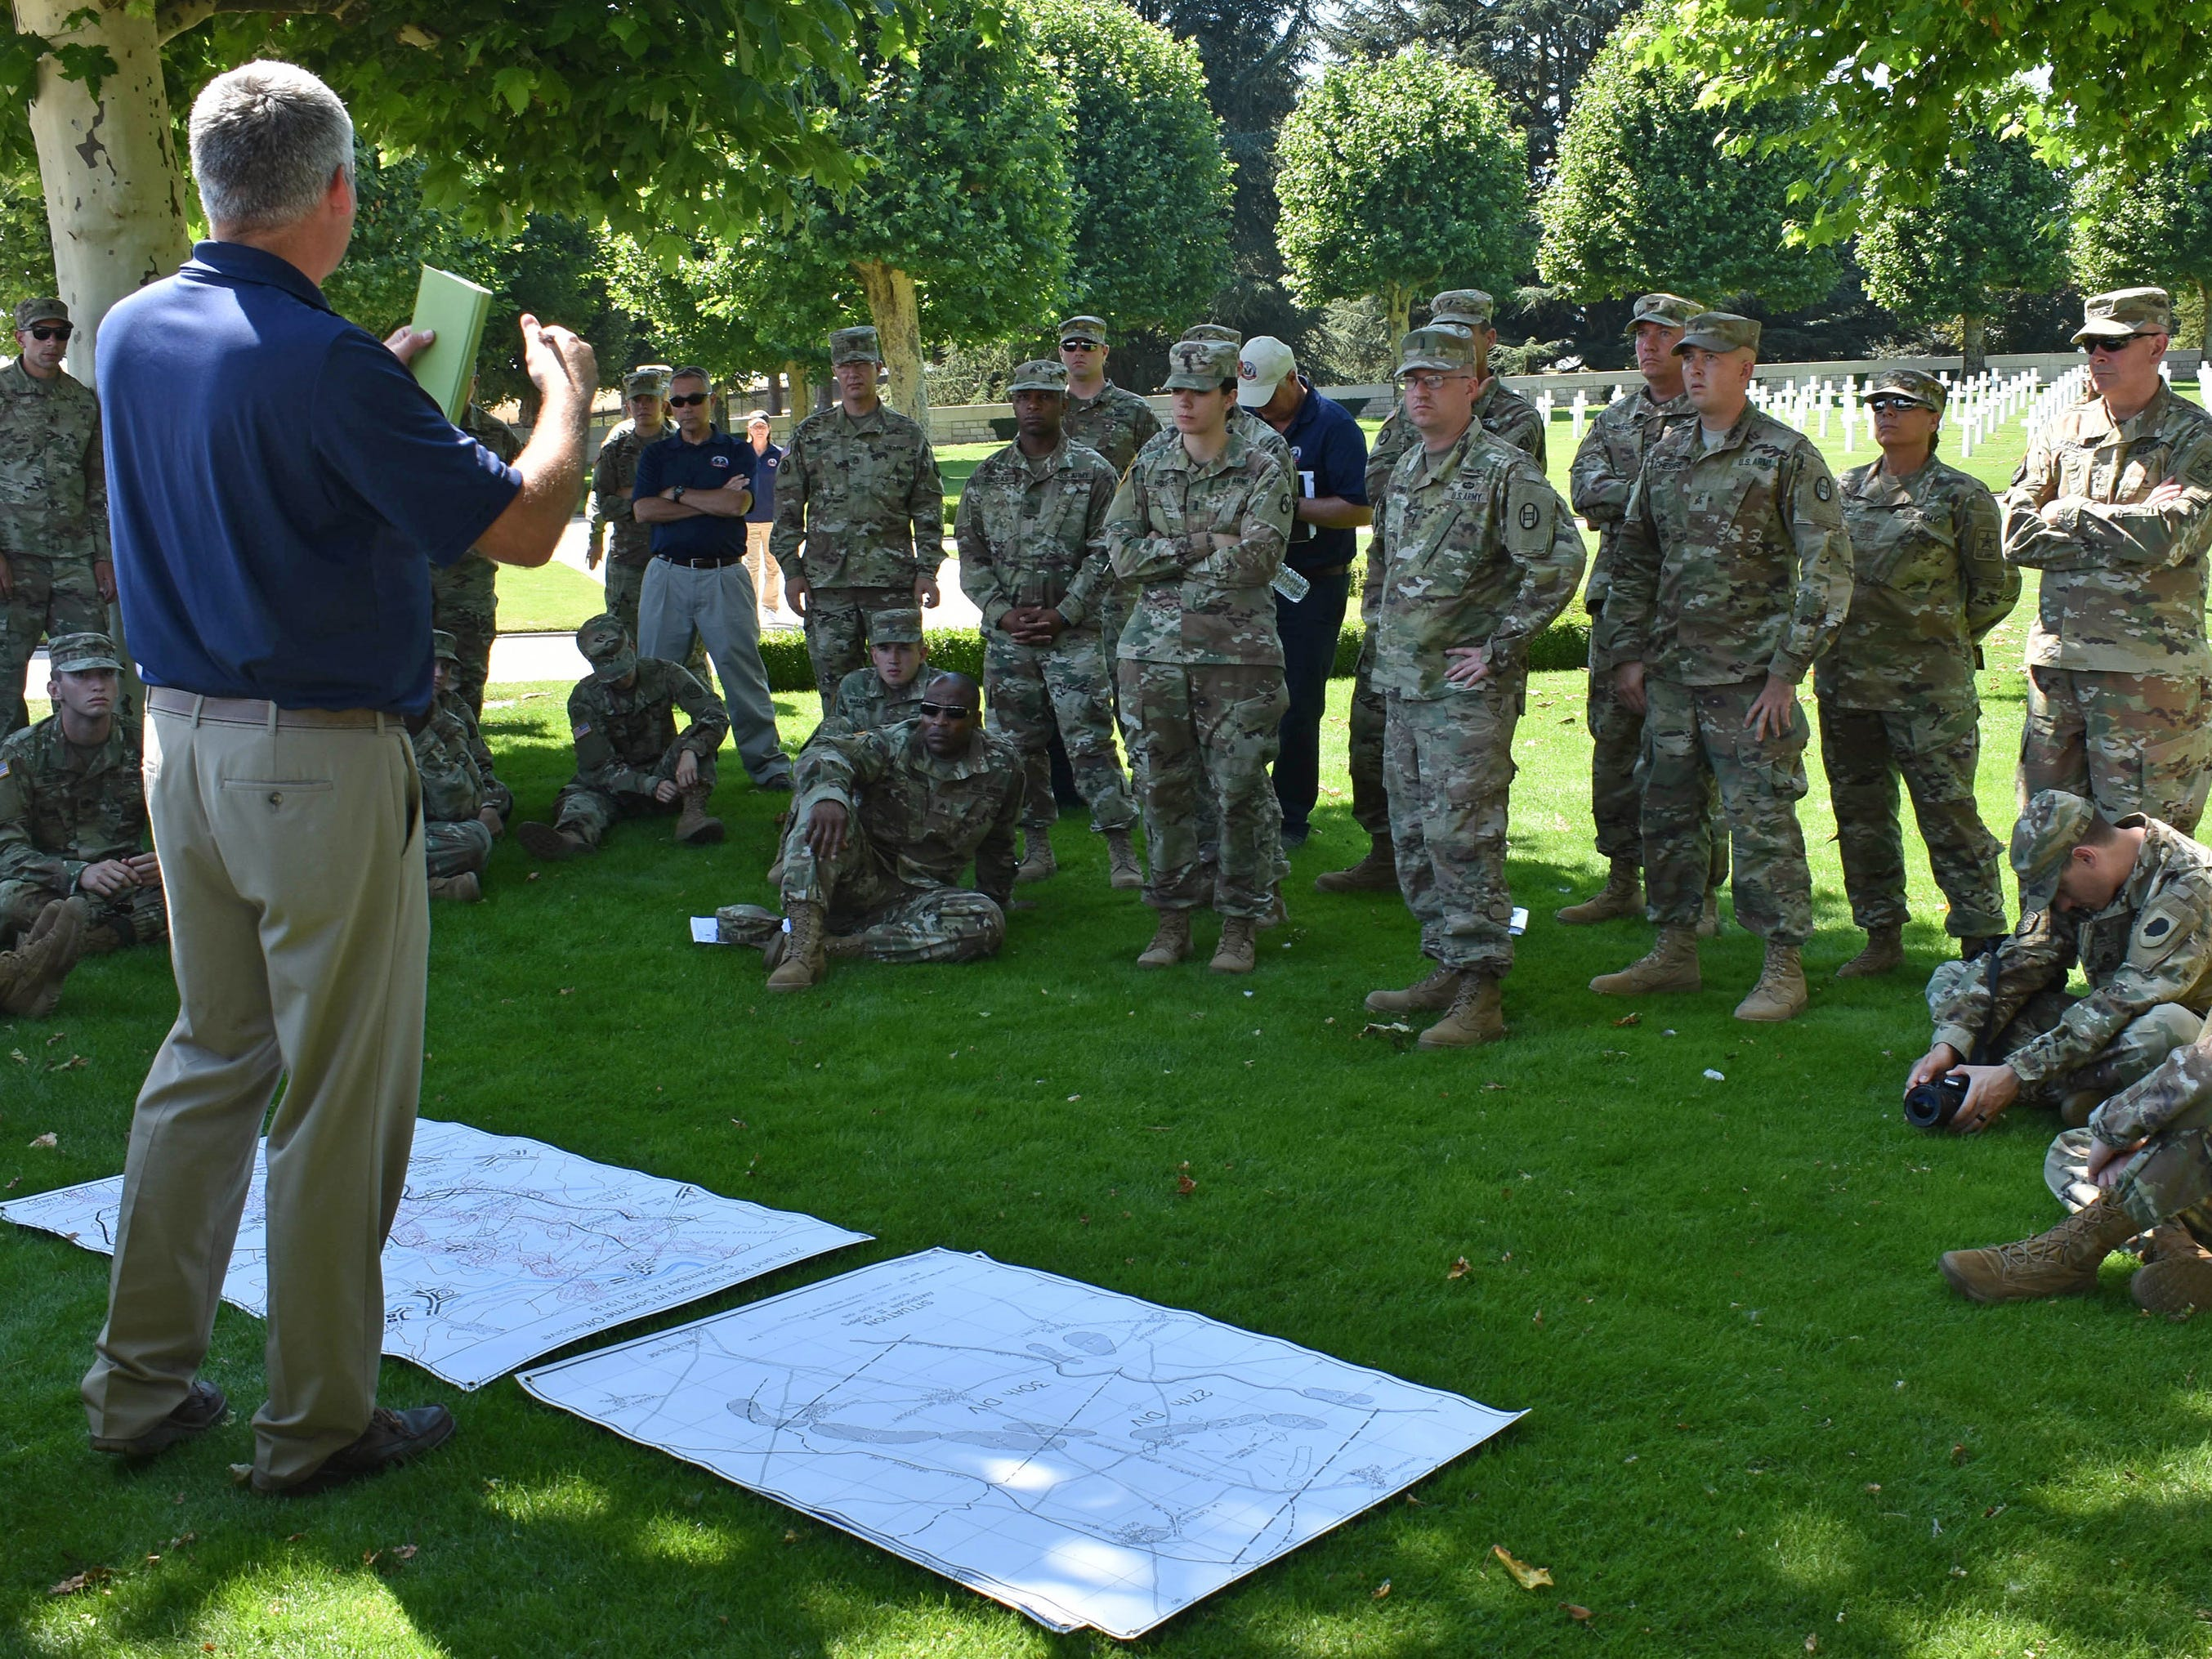 Wisconsin National Guard Maj. Brian Faltinson tells soldiers about the history of their units during the Somme Offensive of September 1918. Faltinson, a historian in the National Guard, traveled to France this summer to brief guardsmen from 15 states about World War I history at the sites of American battles.